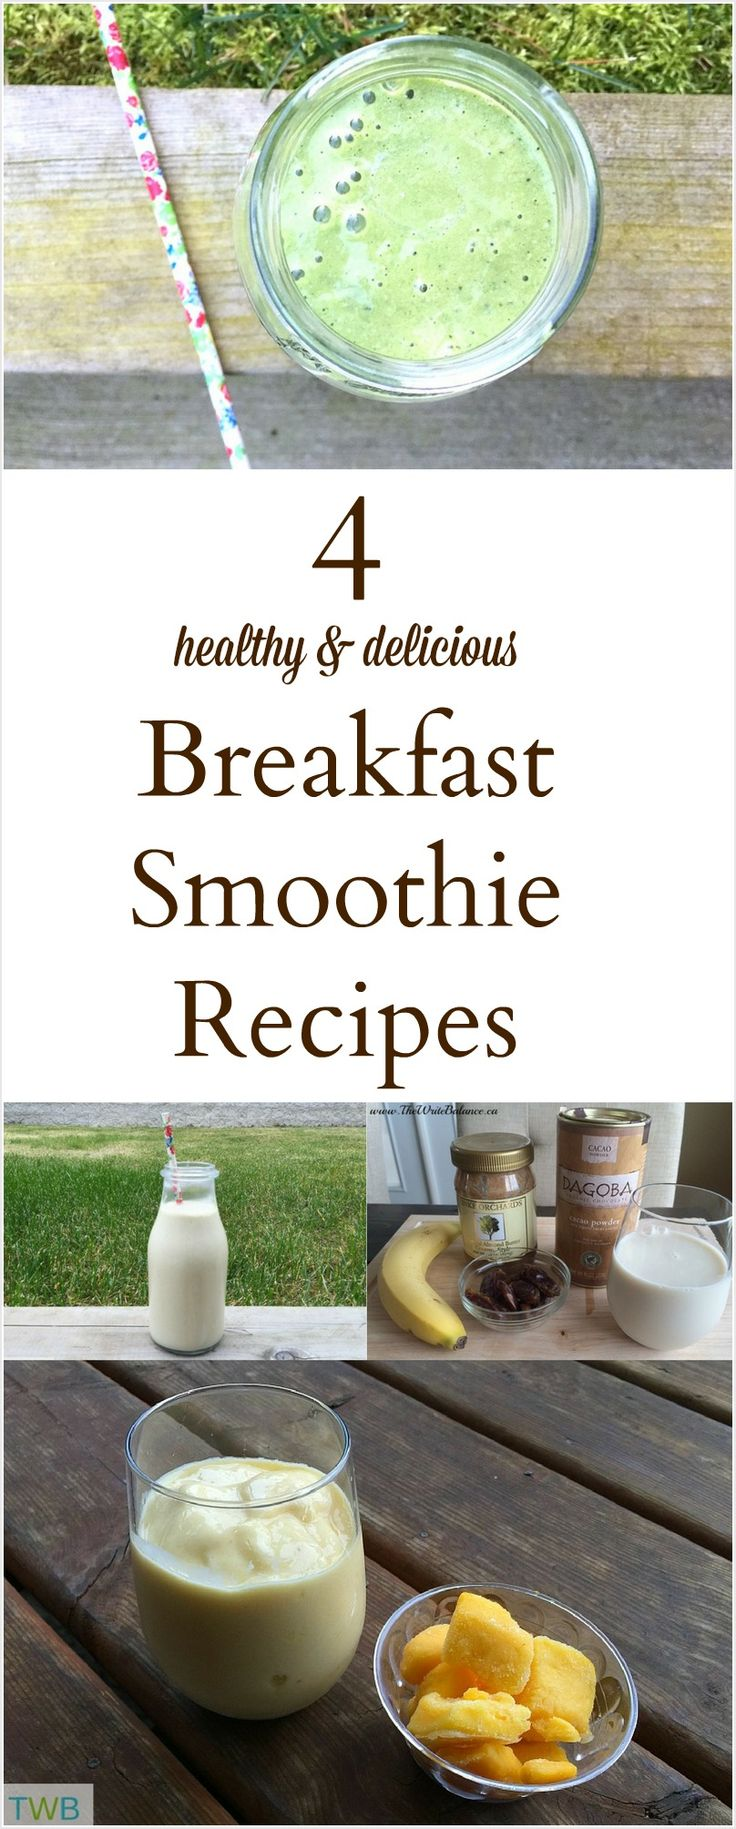 4 Awesome Breakfast Smoothies to try (healthy recipes, breakfast recipes)